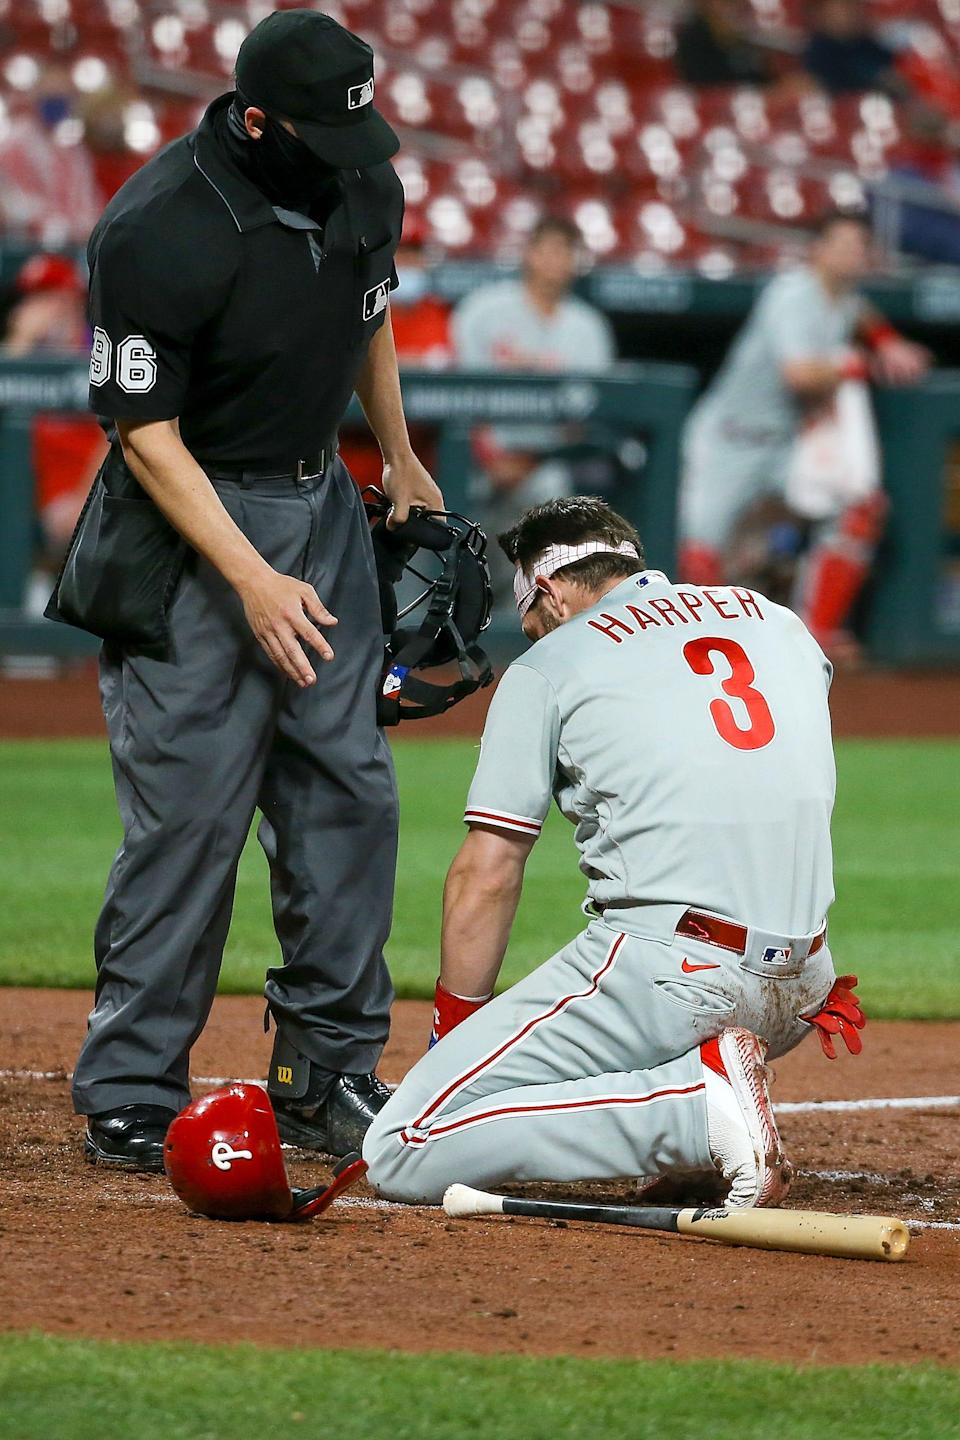 Bryce Harper reacts after getting hit in the face by a pitch on April 28.